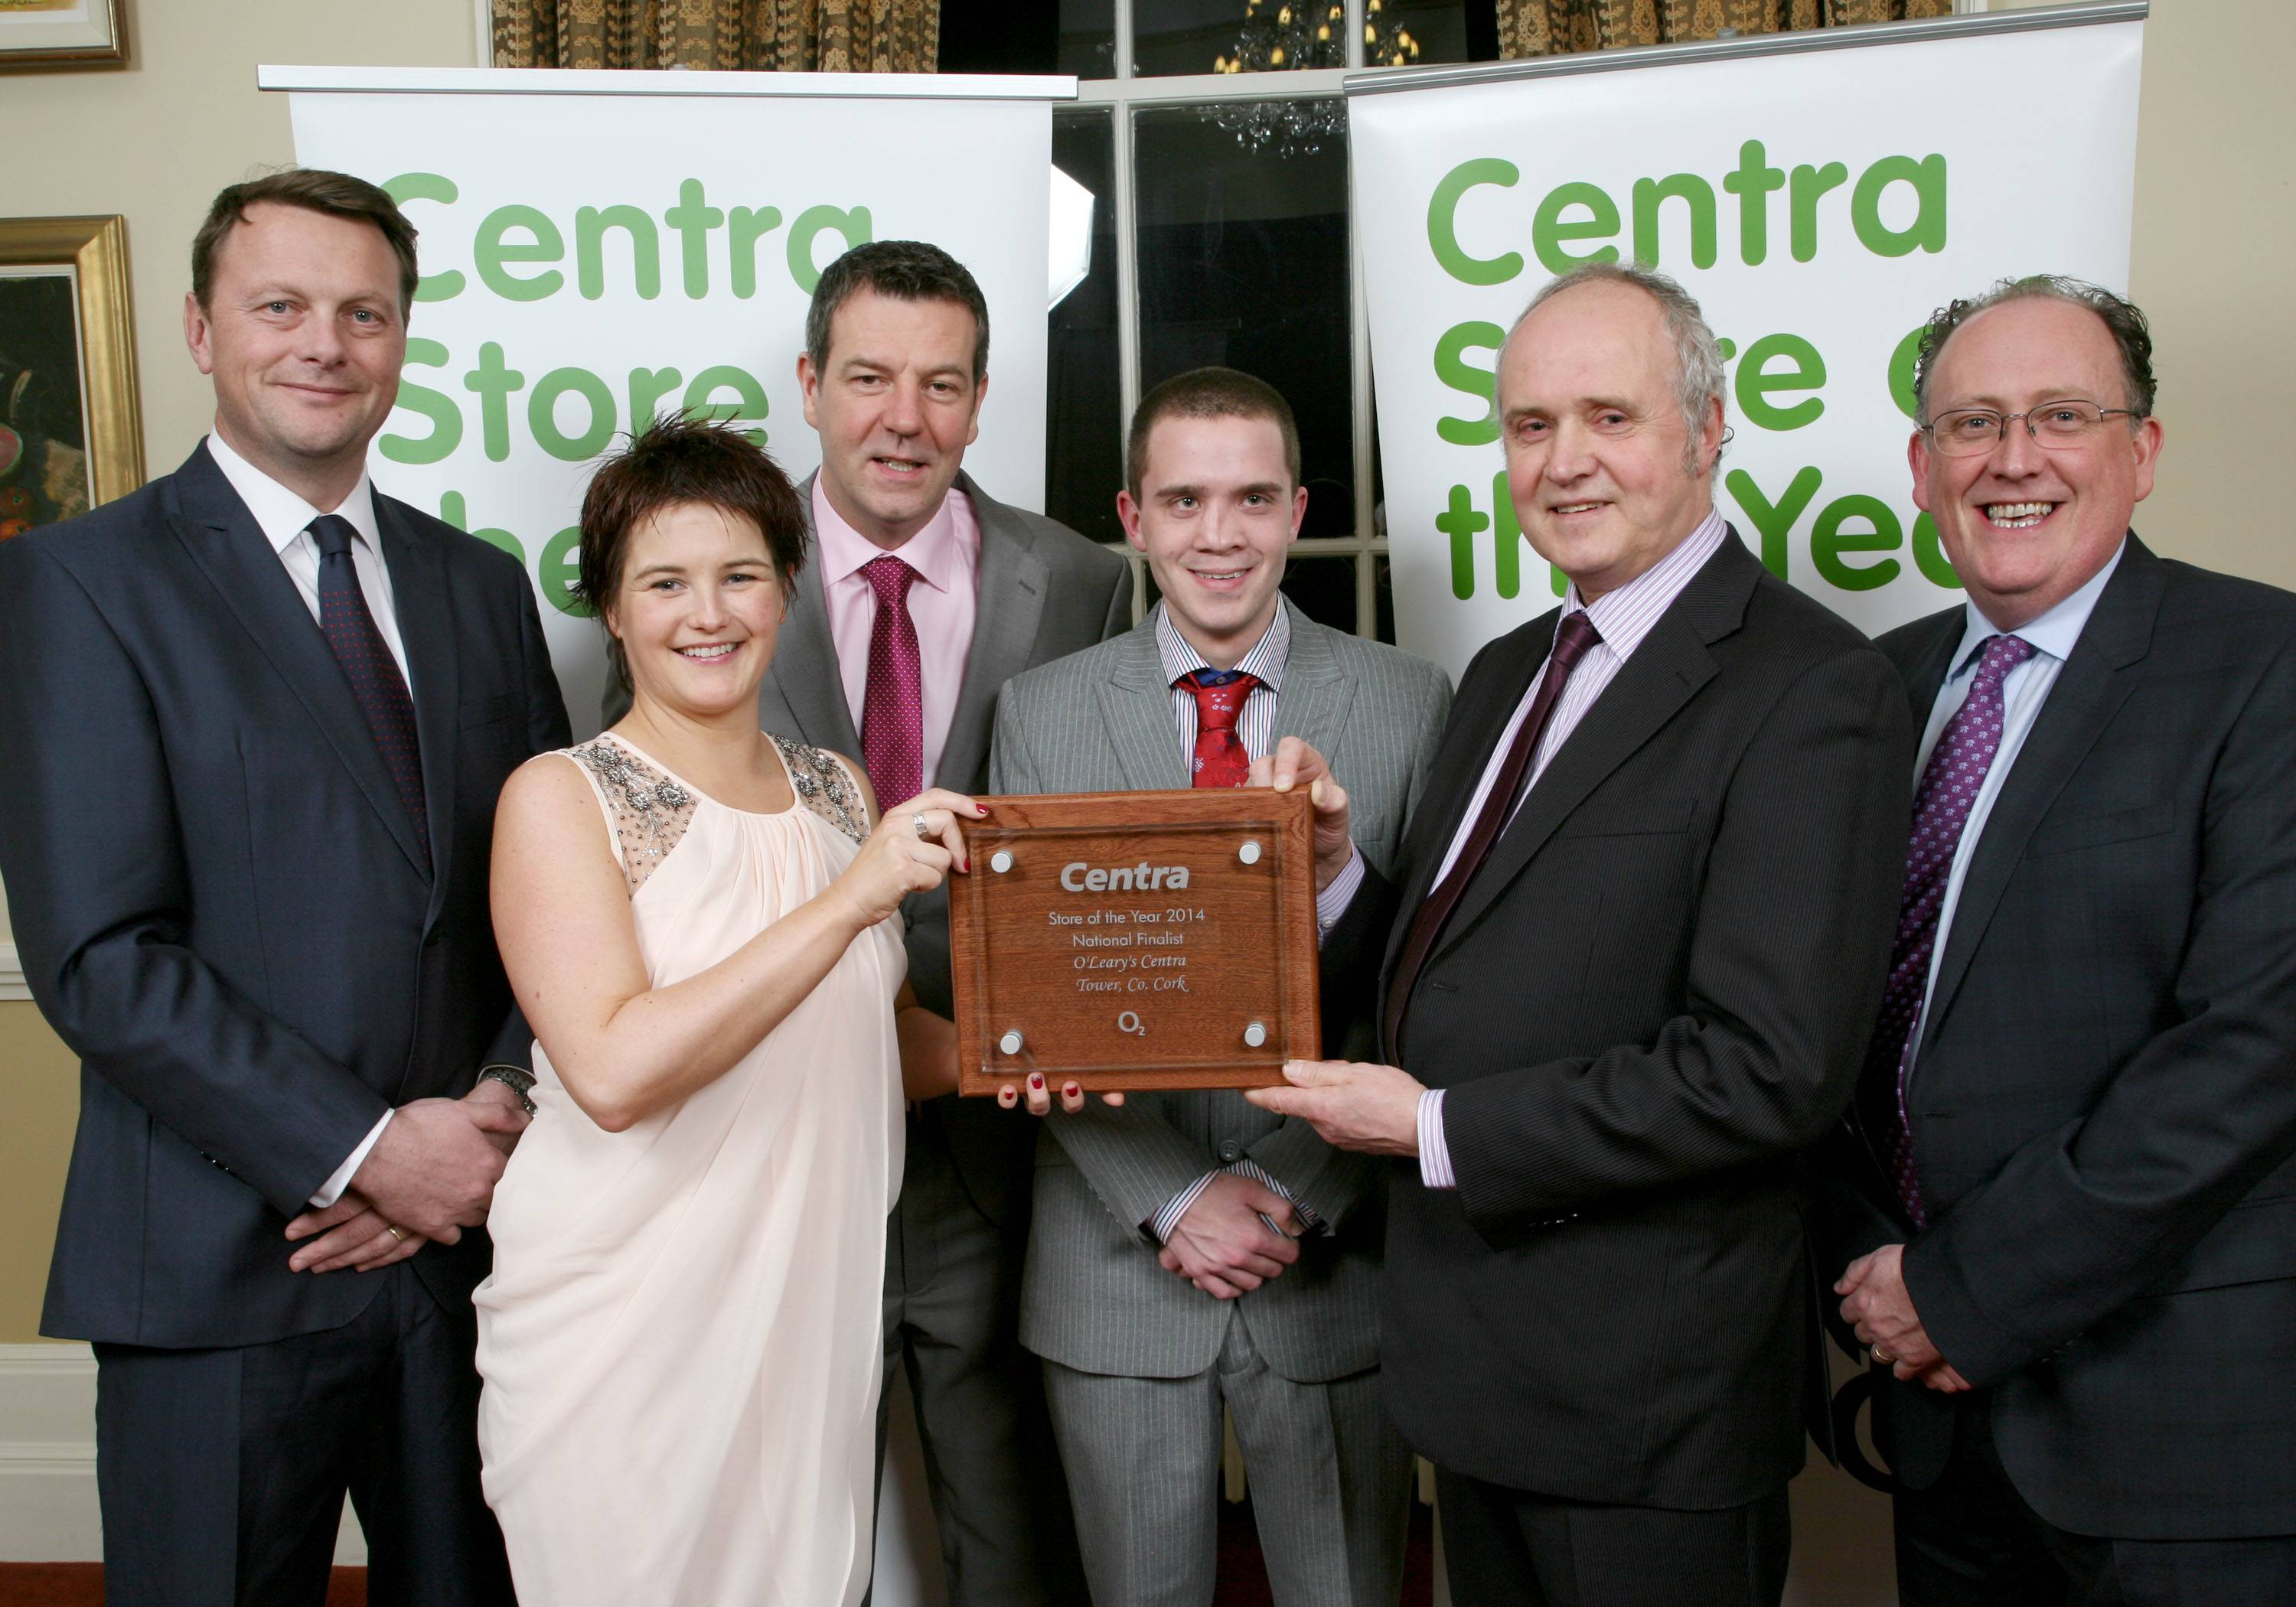 Photo 3 - O'Leary's Centra, Blarney - Finalist of SOTY Award